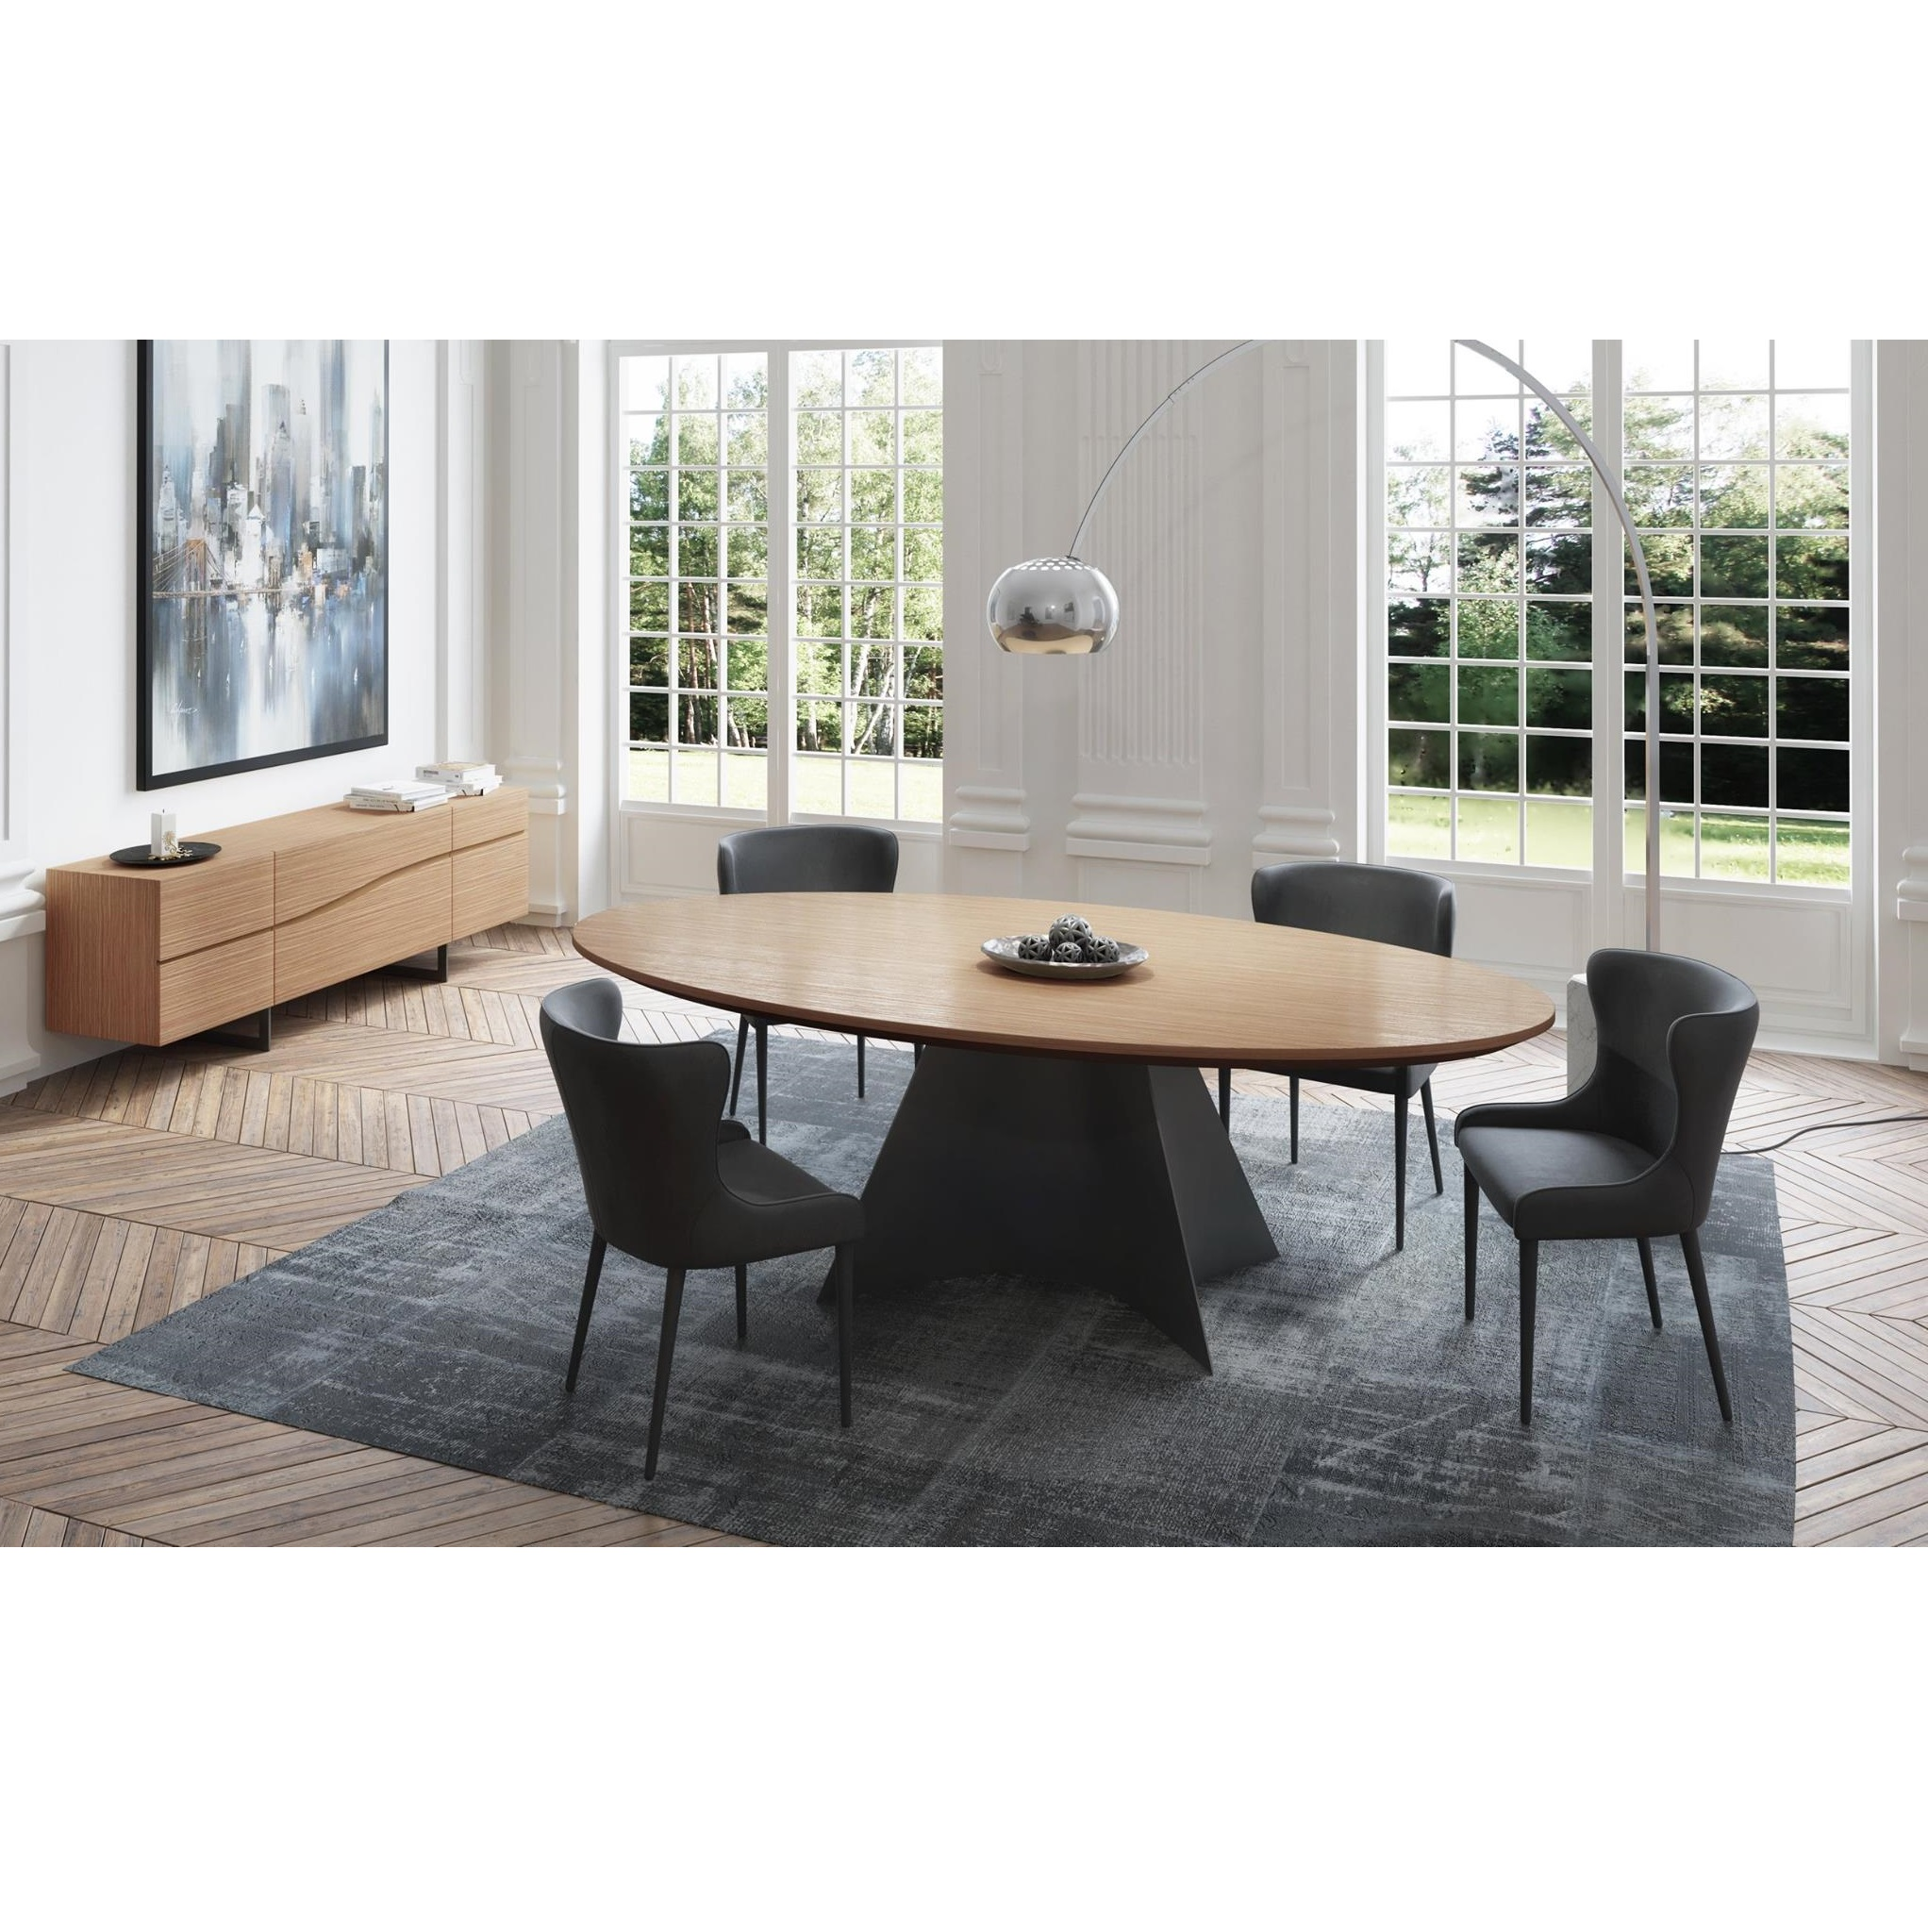 Modern Furniture Ottawa Vincent Oval Dining Table